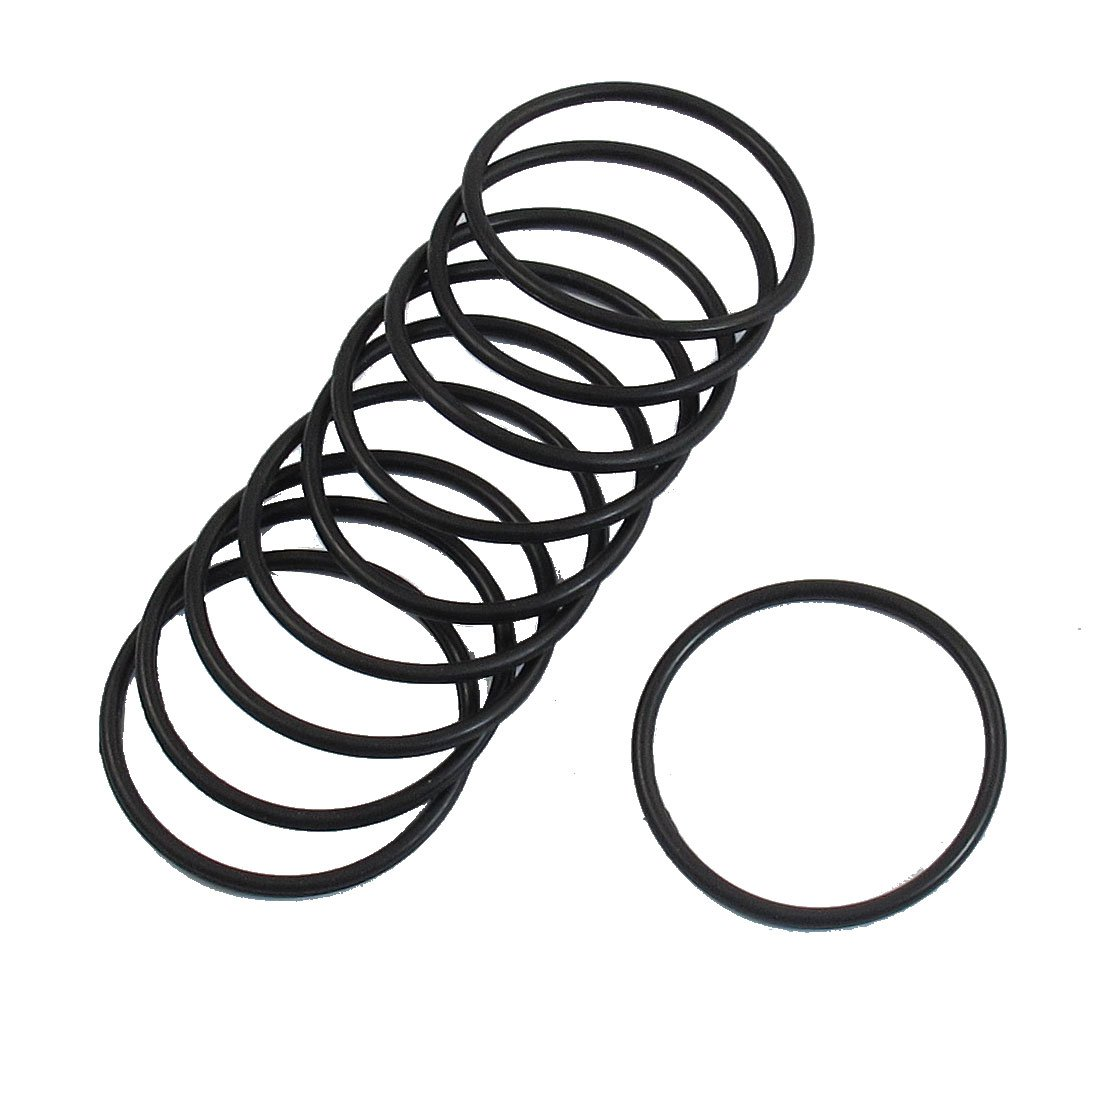 10 Pcs 35mm x 2mm Industrial Flexible Rubber O Ring Seal Washer